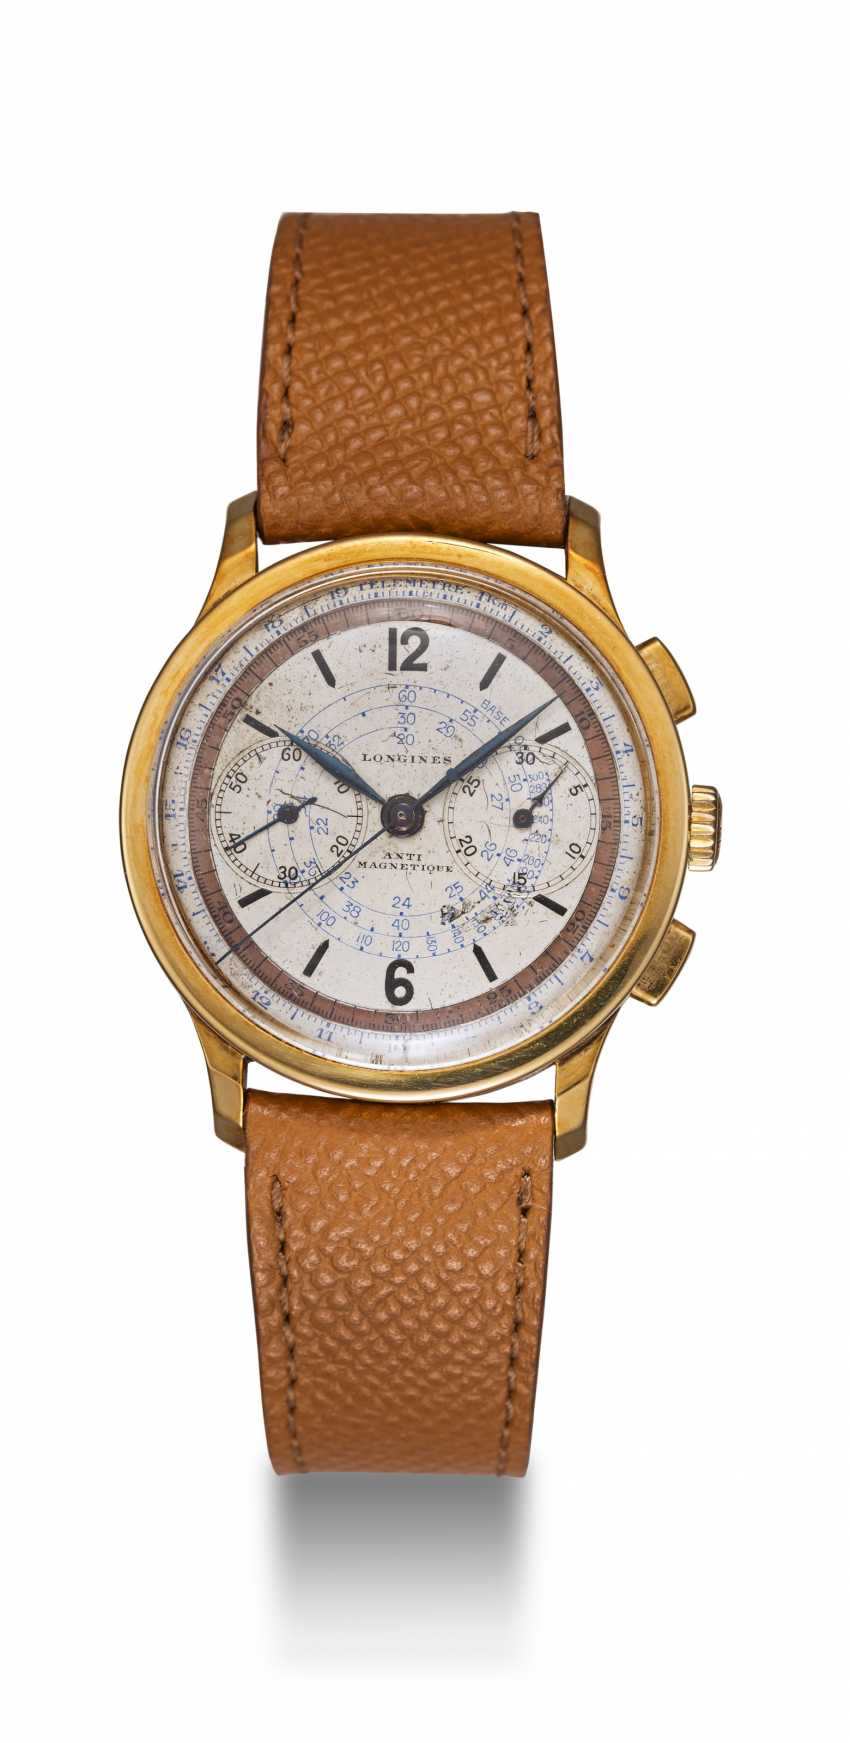 LONGINES, A YELLOW GOLD MULTI-SCALE CHRONOGRAPH WITH 13ZN MOVEMENT - photo 3